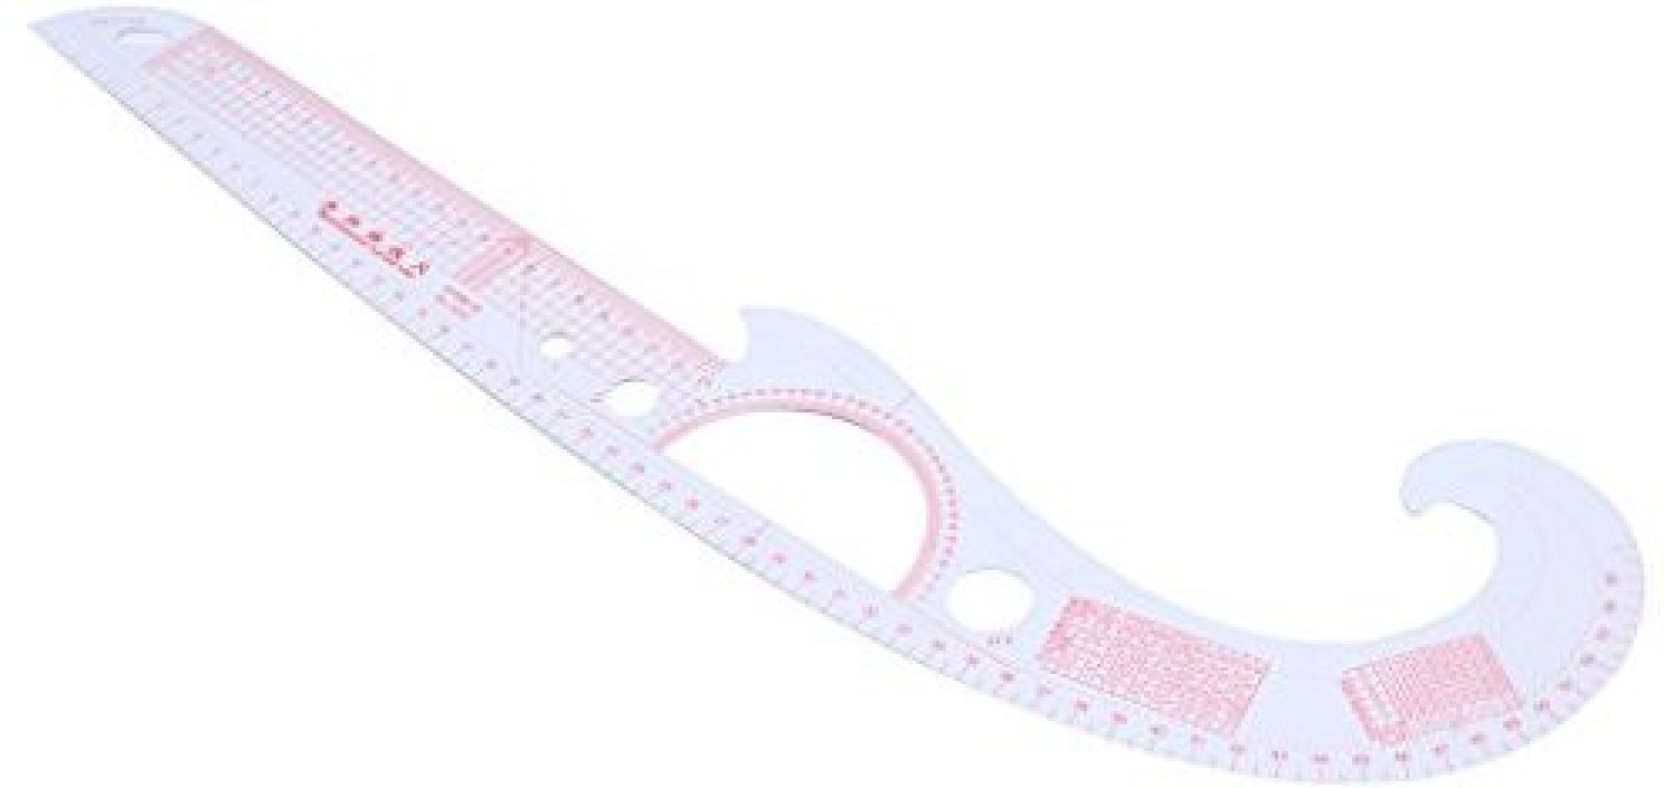 Hacloser Multi-Function Curved Metric Ruler 52Cm For Making